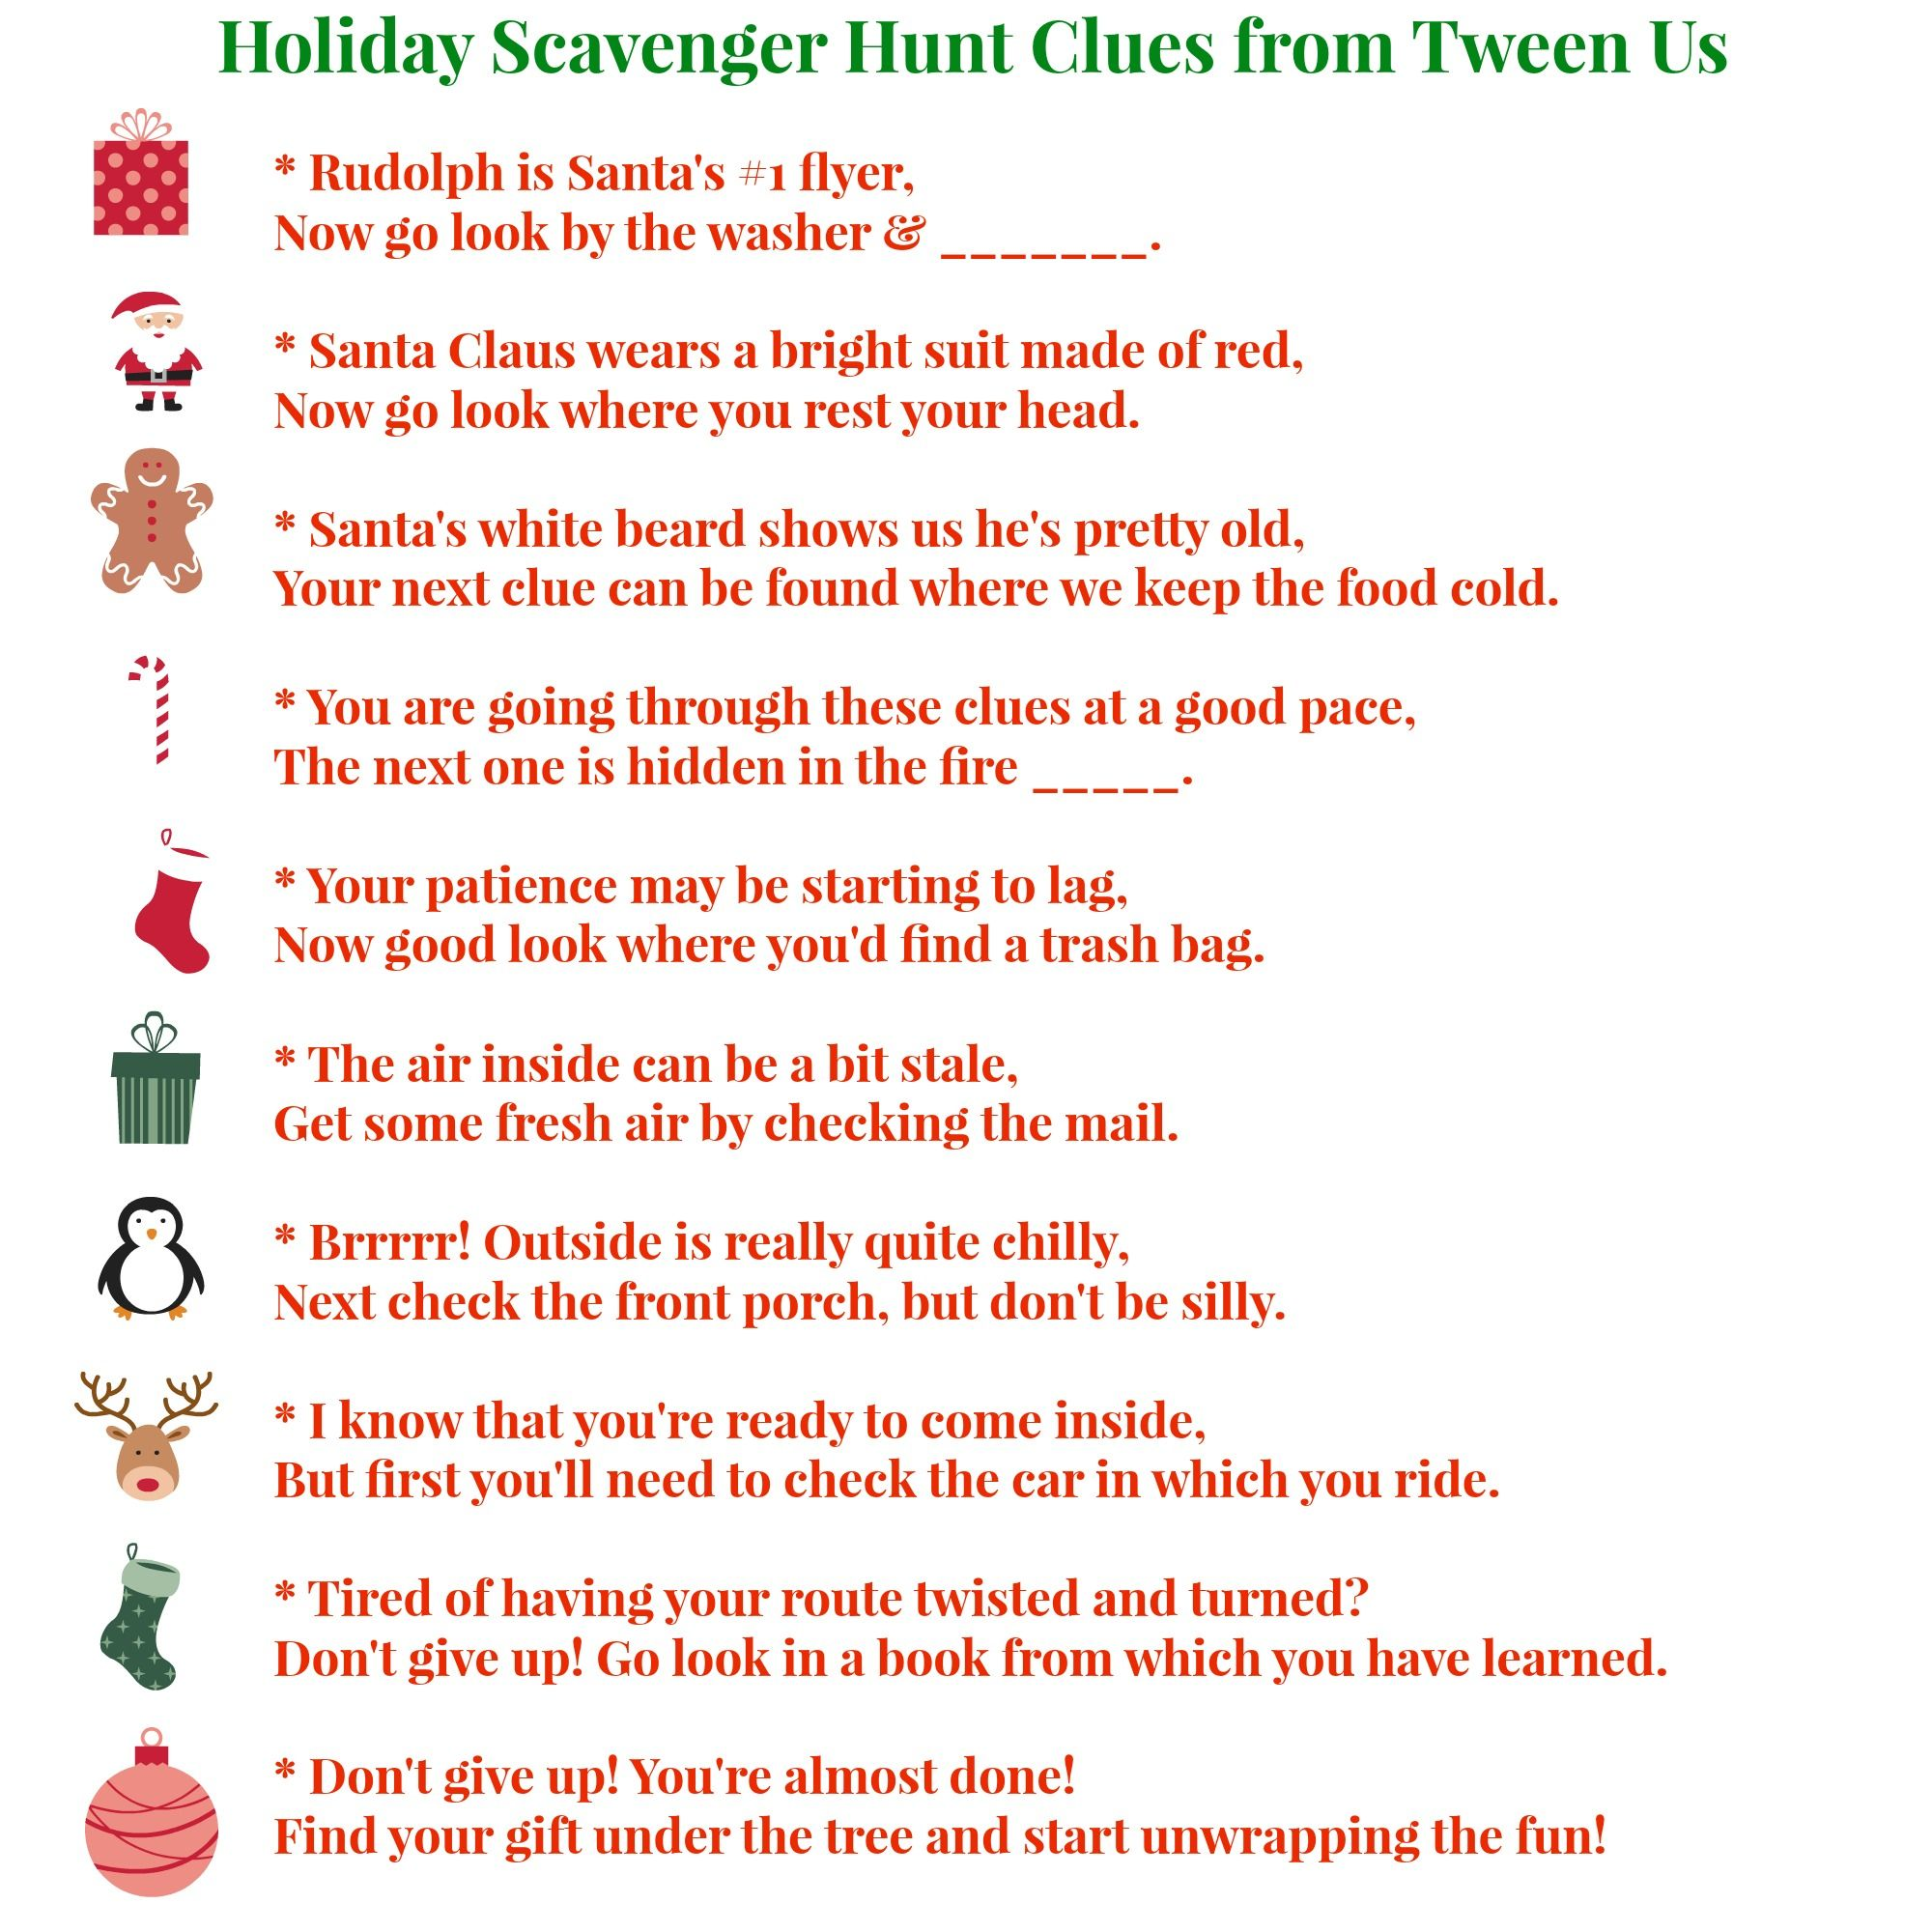 Christmas Scavenger Hunt Ideas Scavenger Hunt Clues From Tween